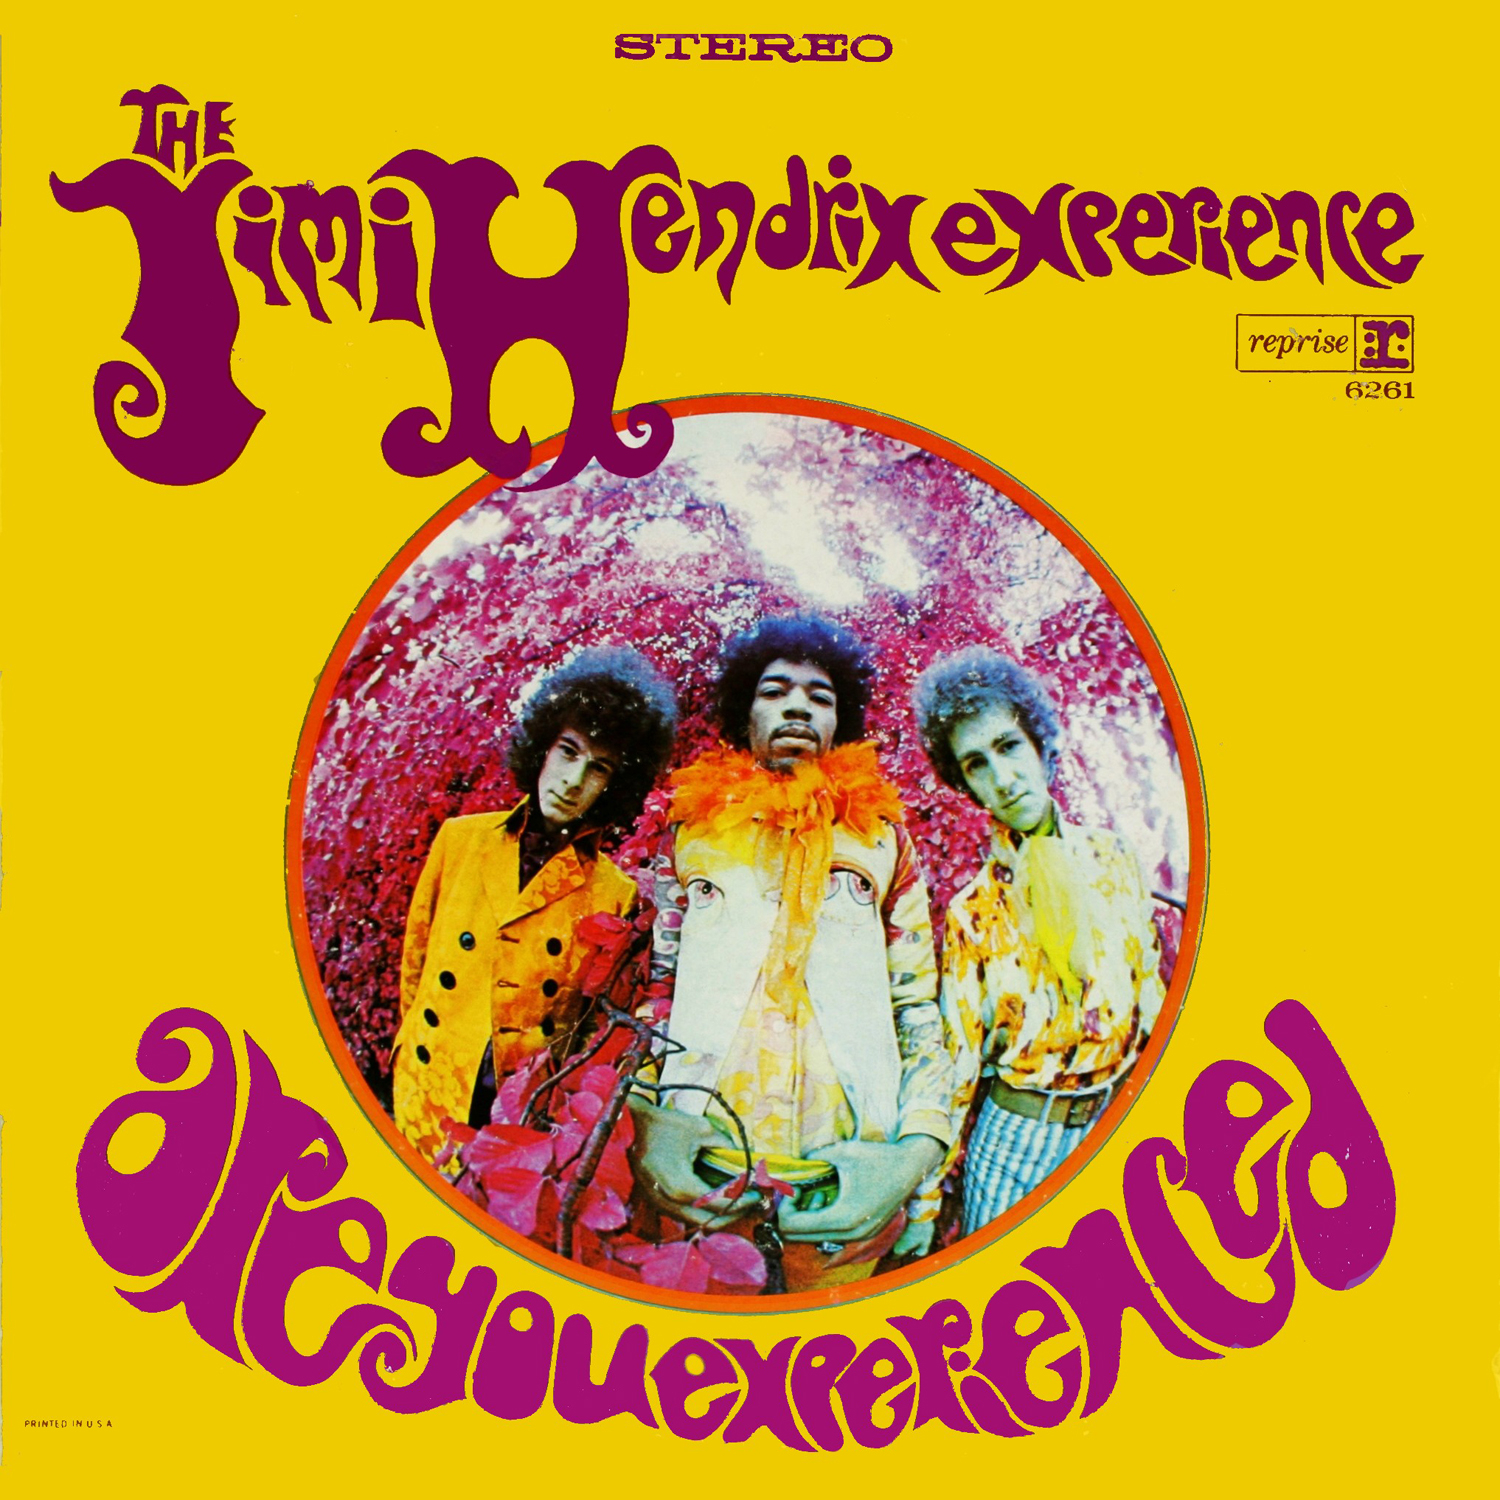 Jimi Hendrix's 'Are You Experienced': 10 Things You Didn't Know